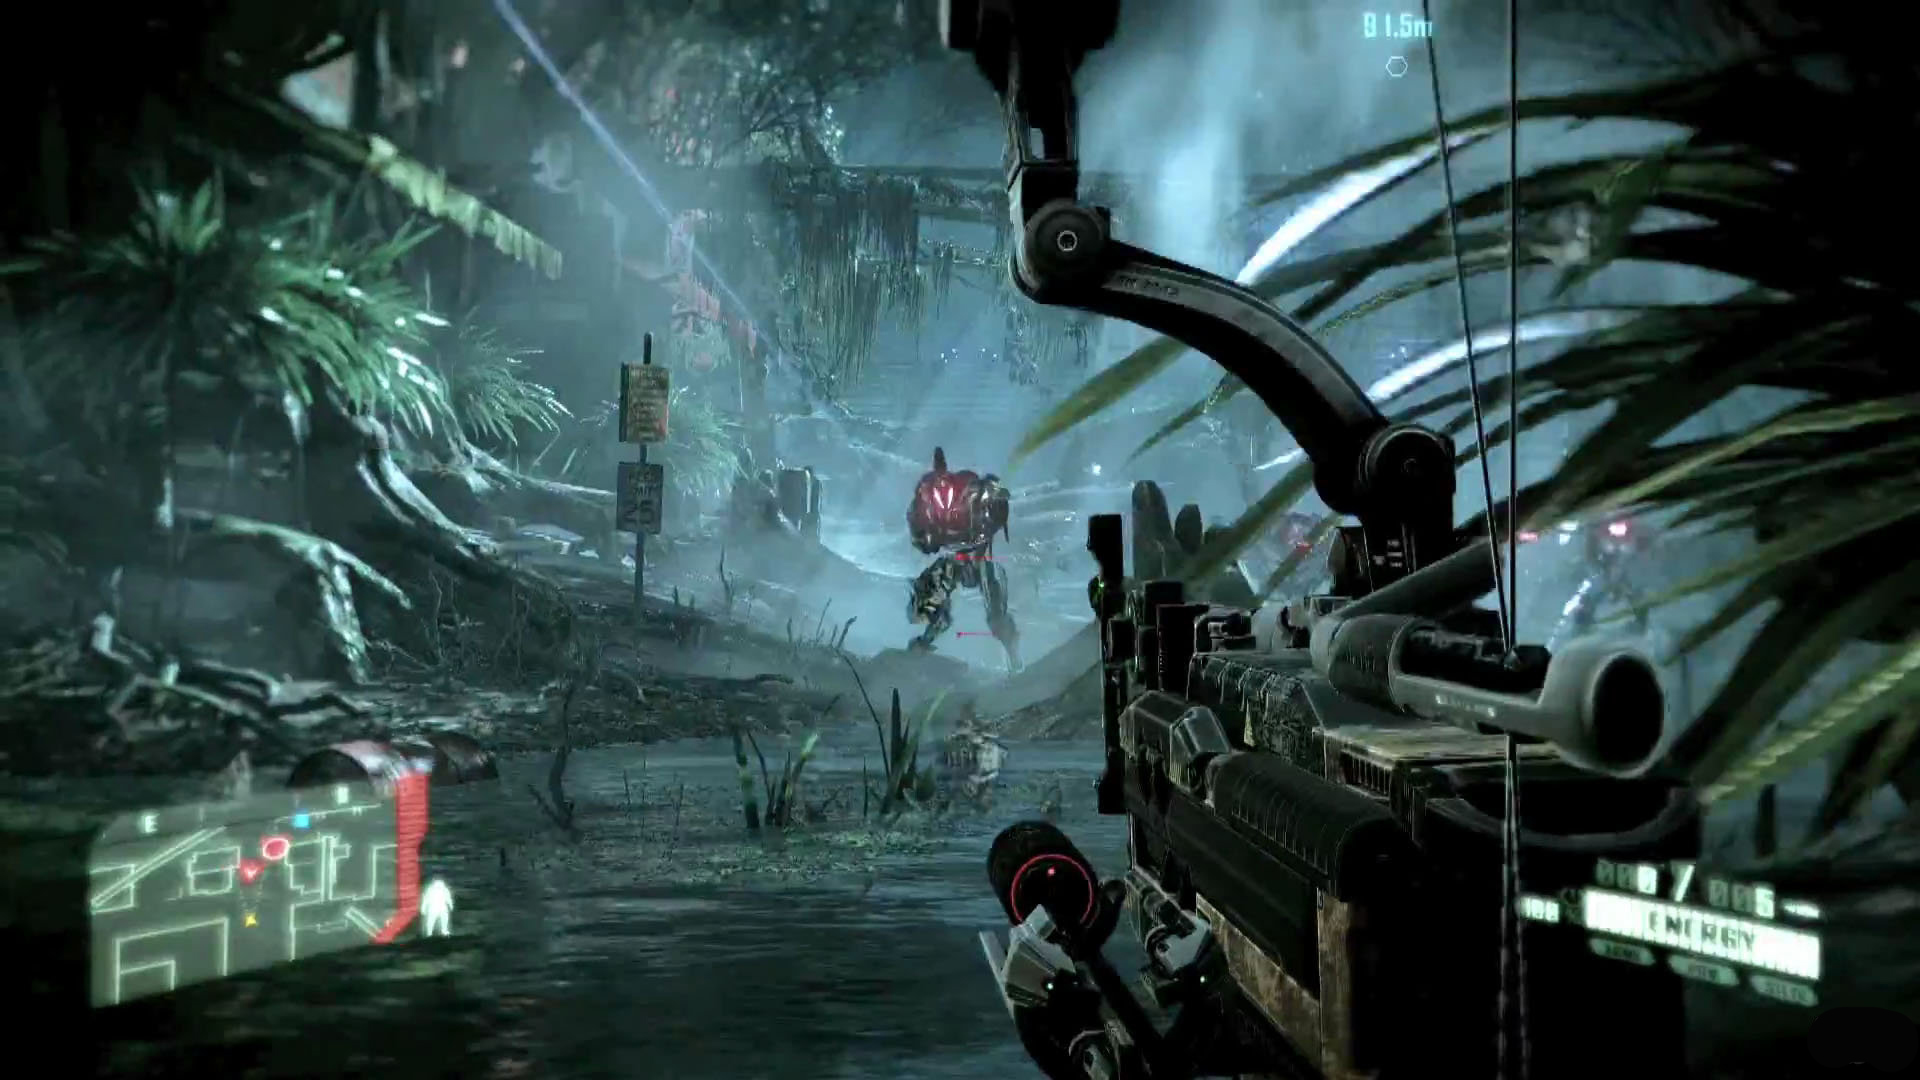 'Crysis 3' missing Wii U due to business dealings between EA and Nintendo